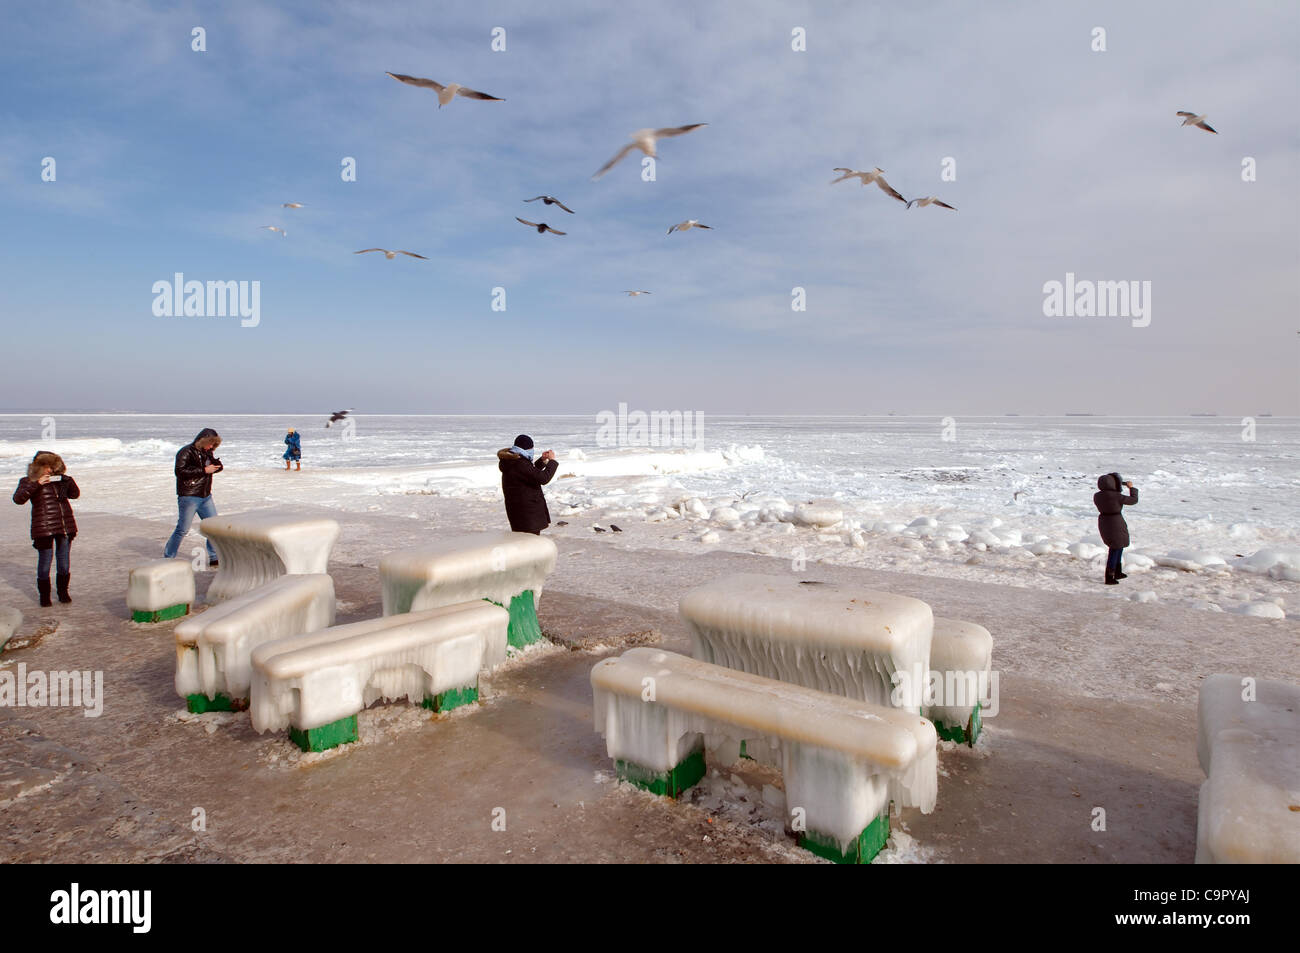 Icy cafe tables and benches on the beach of the frozen Black Sea, a rare phenomenon, last time it occured in 1977, Stock Photo